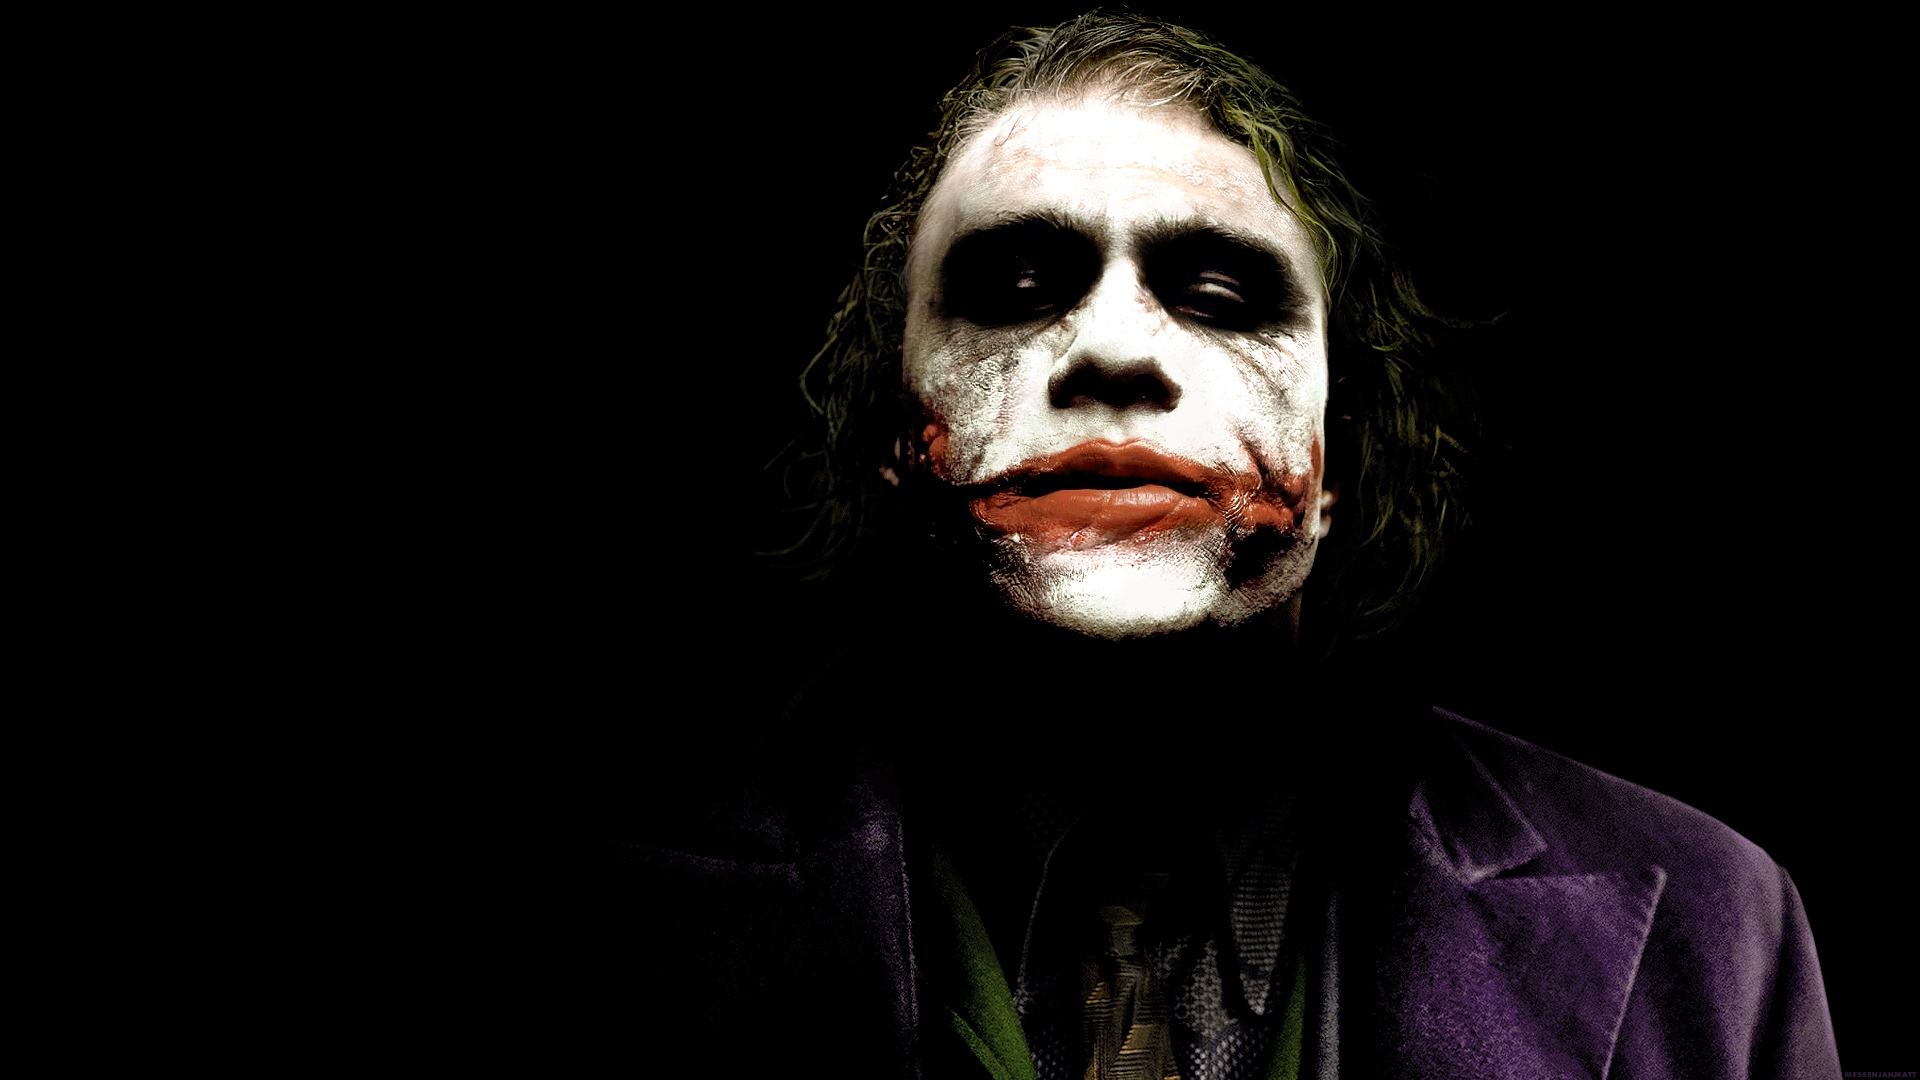 Download The Joker Wallpaper 1920x1080 Wallpoper 298271 1920x1080